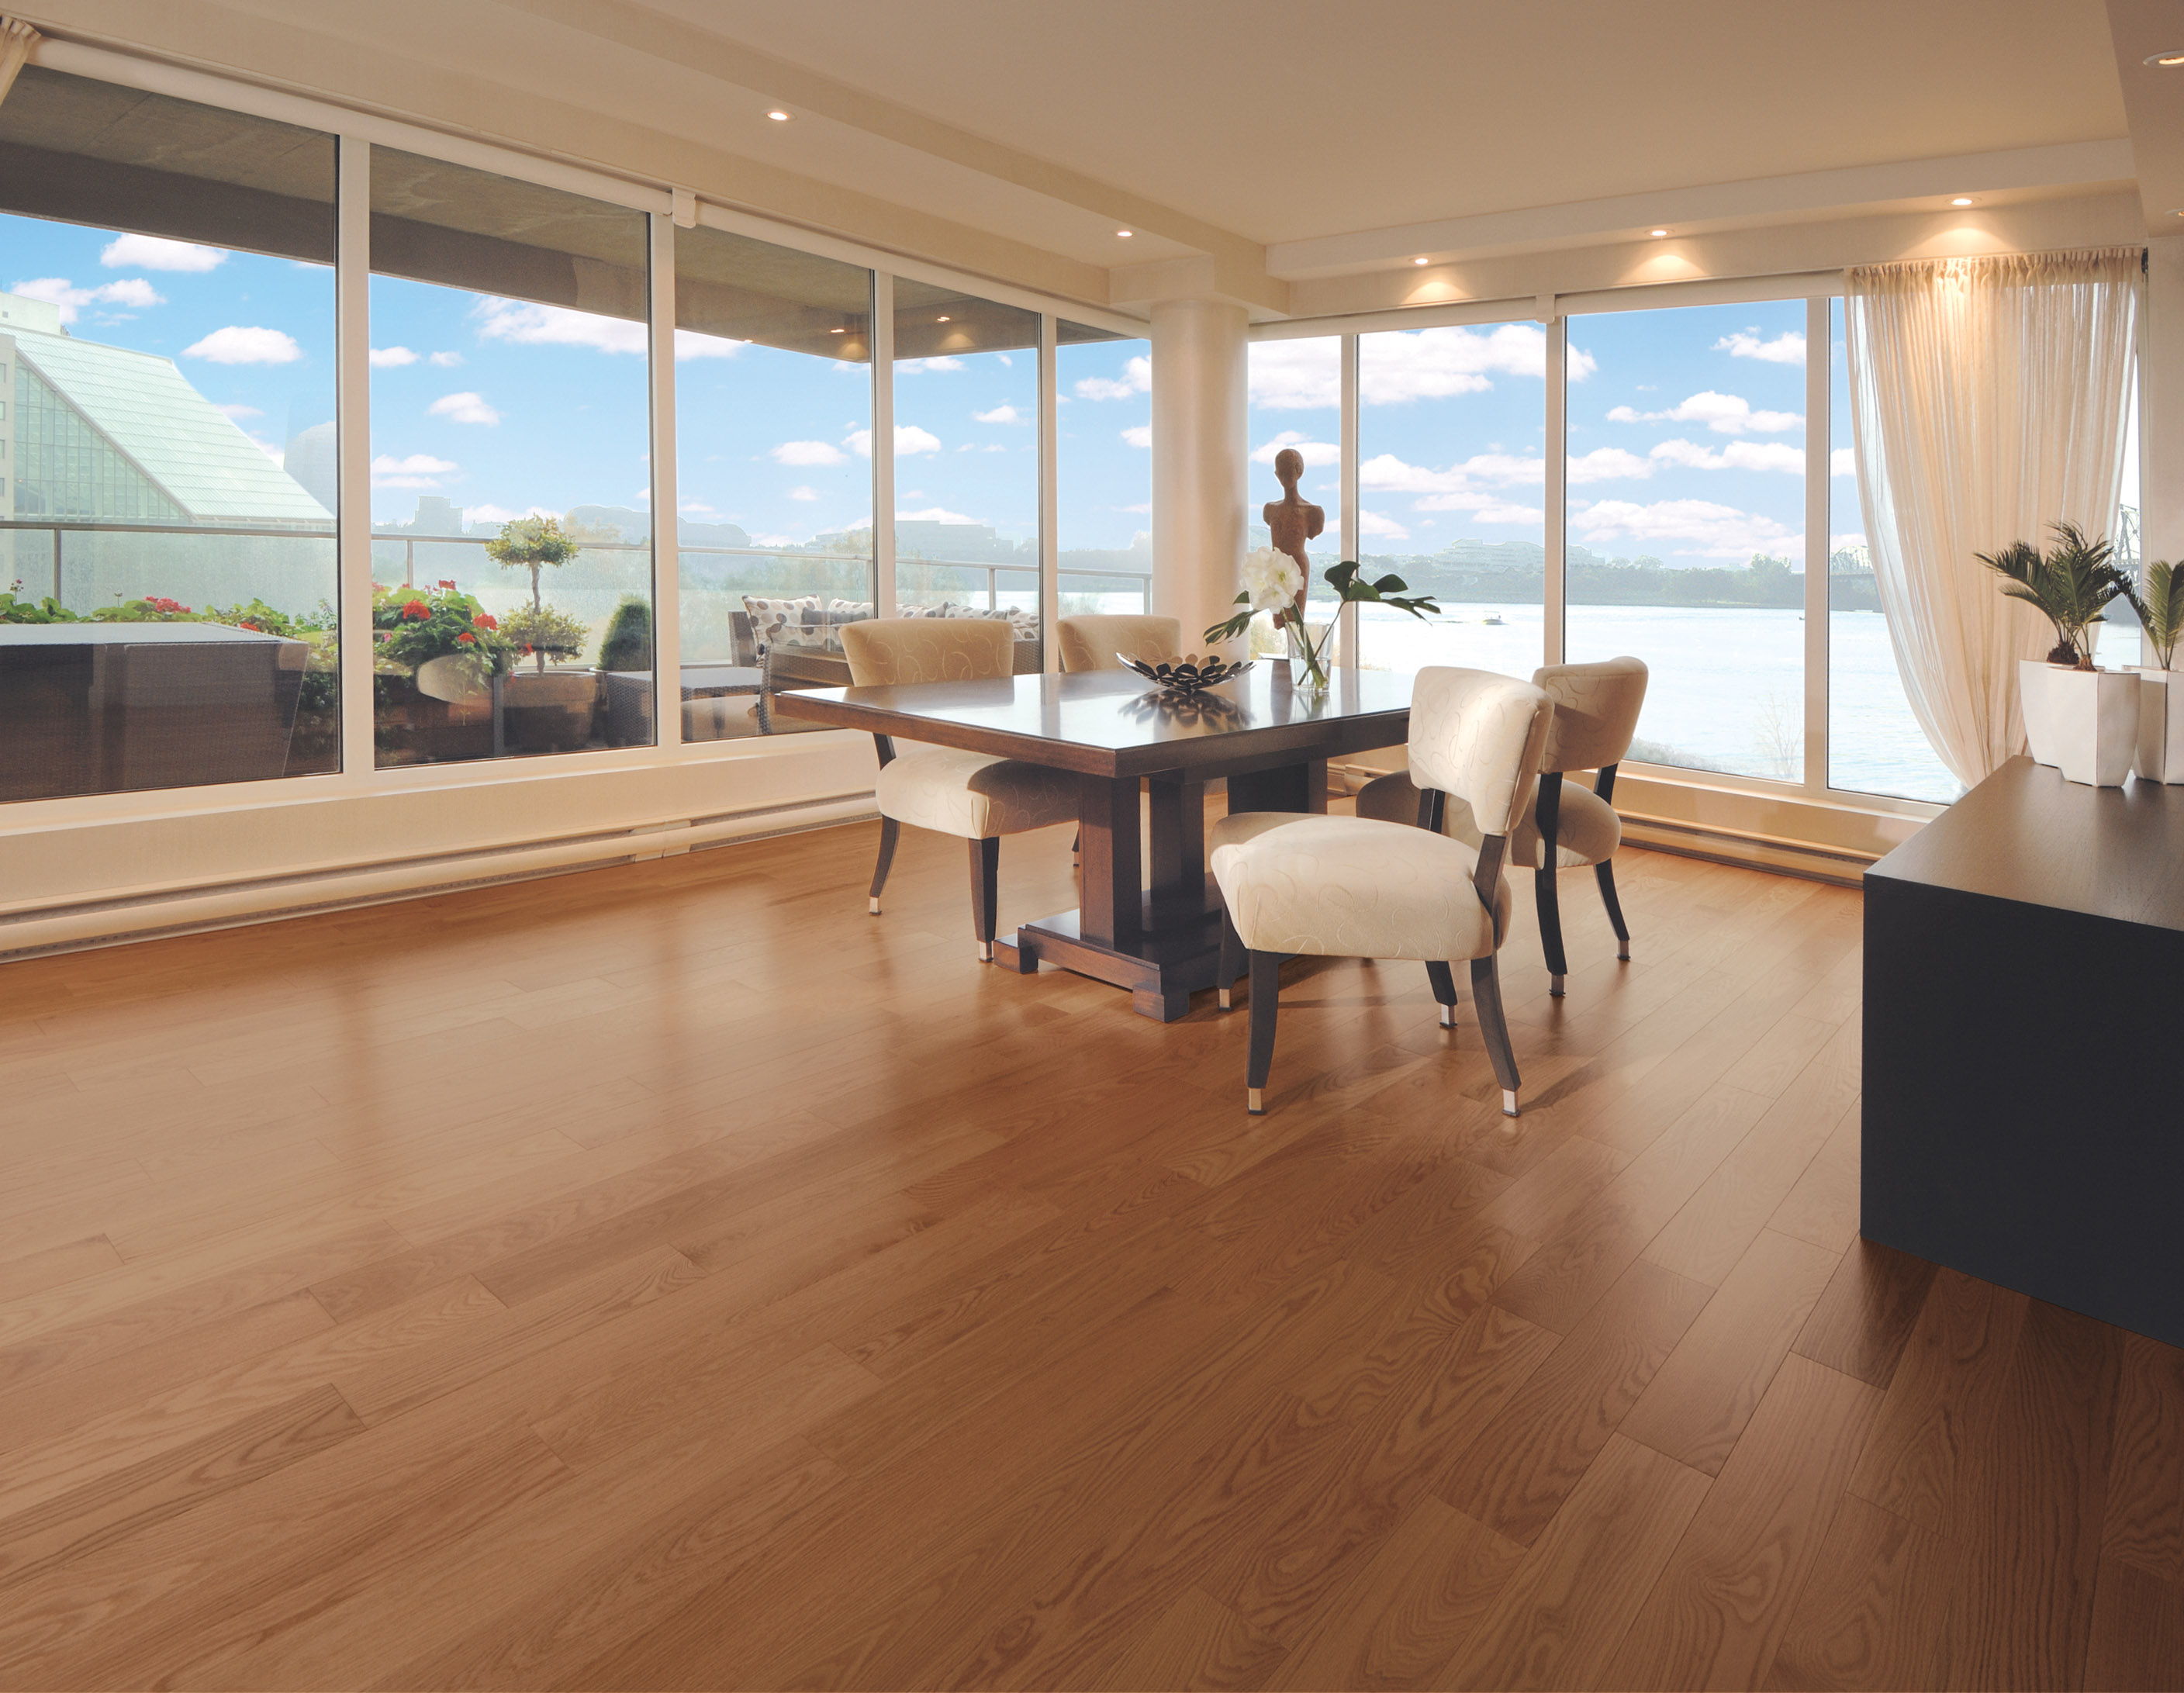 Kitchen with a natural Red Oak hardwood floor. - Plancher ...